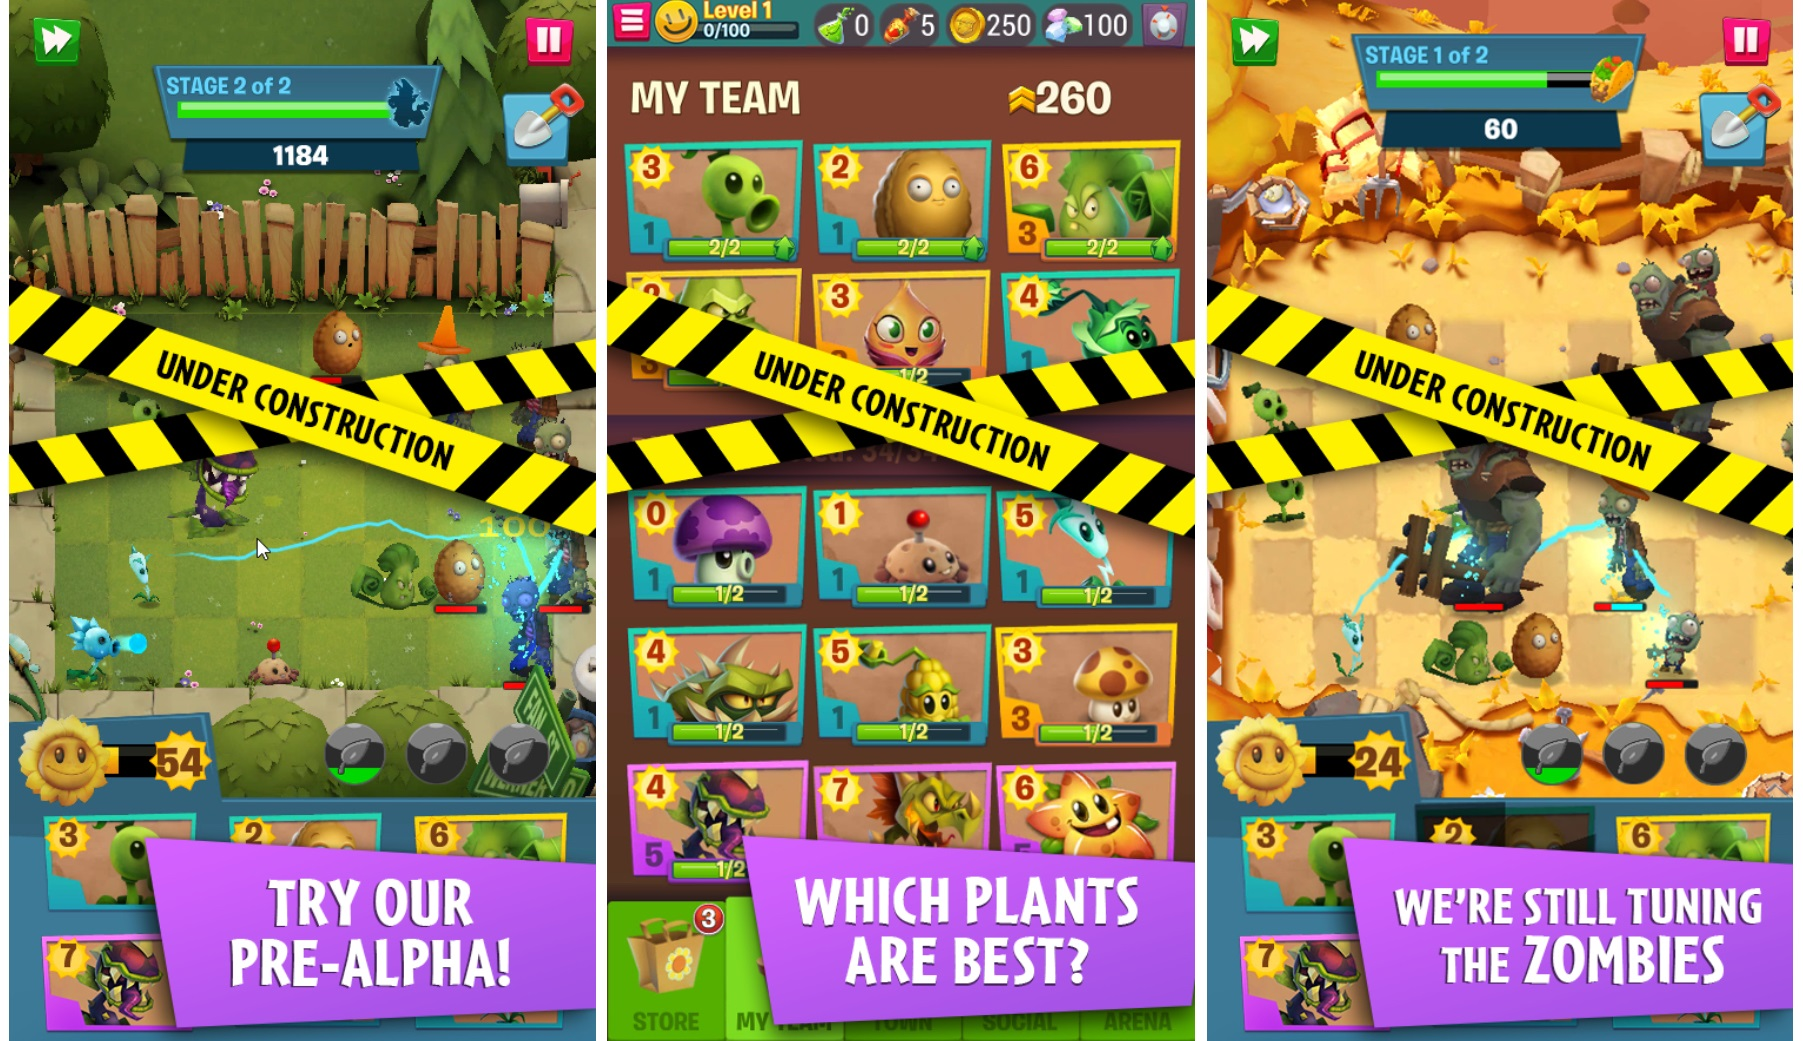 Plants Vs. Zombies 3 is in Pre-Alpha